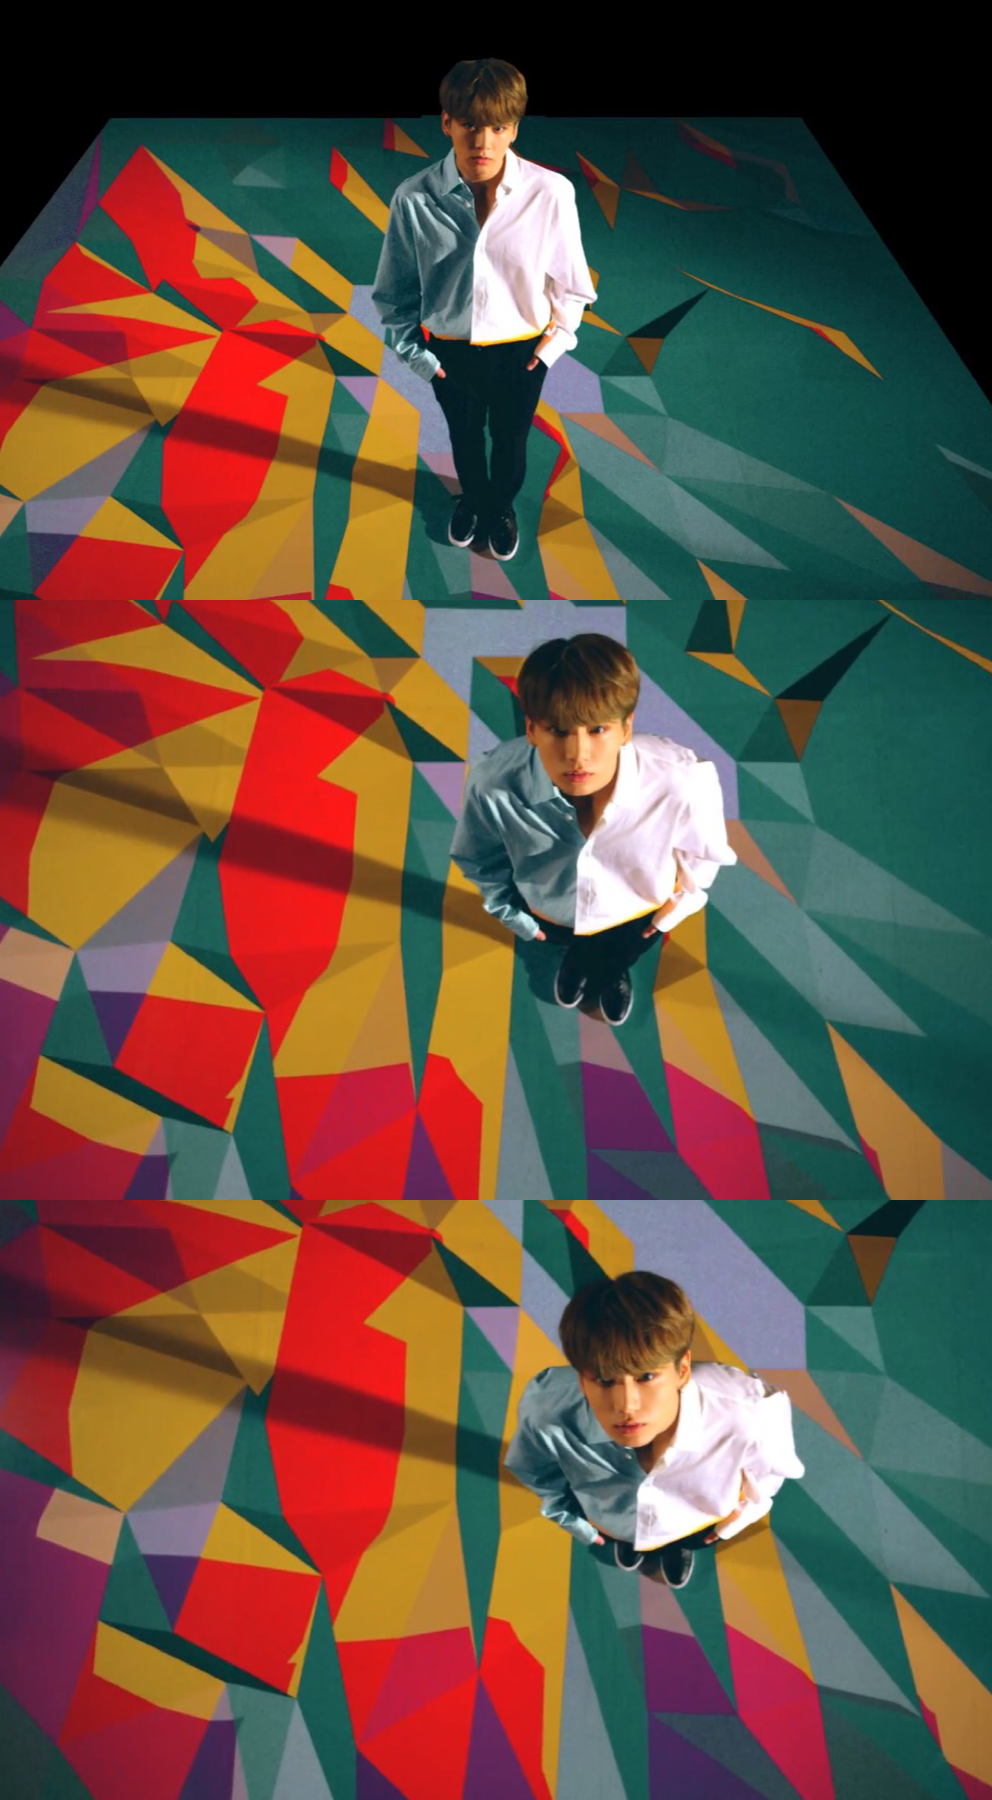 Bts Jungkook Dna Wallpaper Jungkook Wallpaper Dna